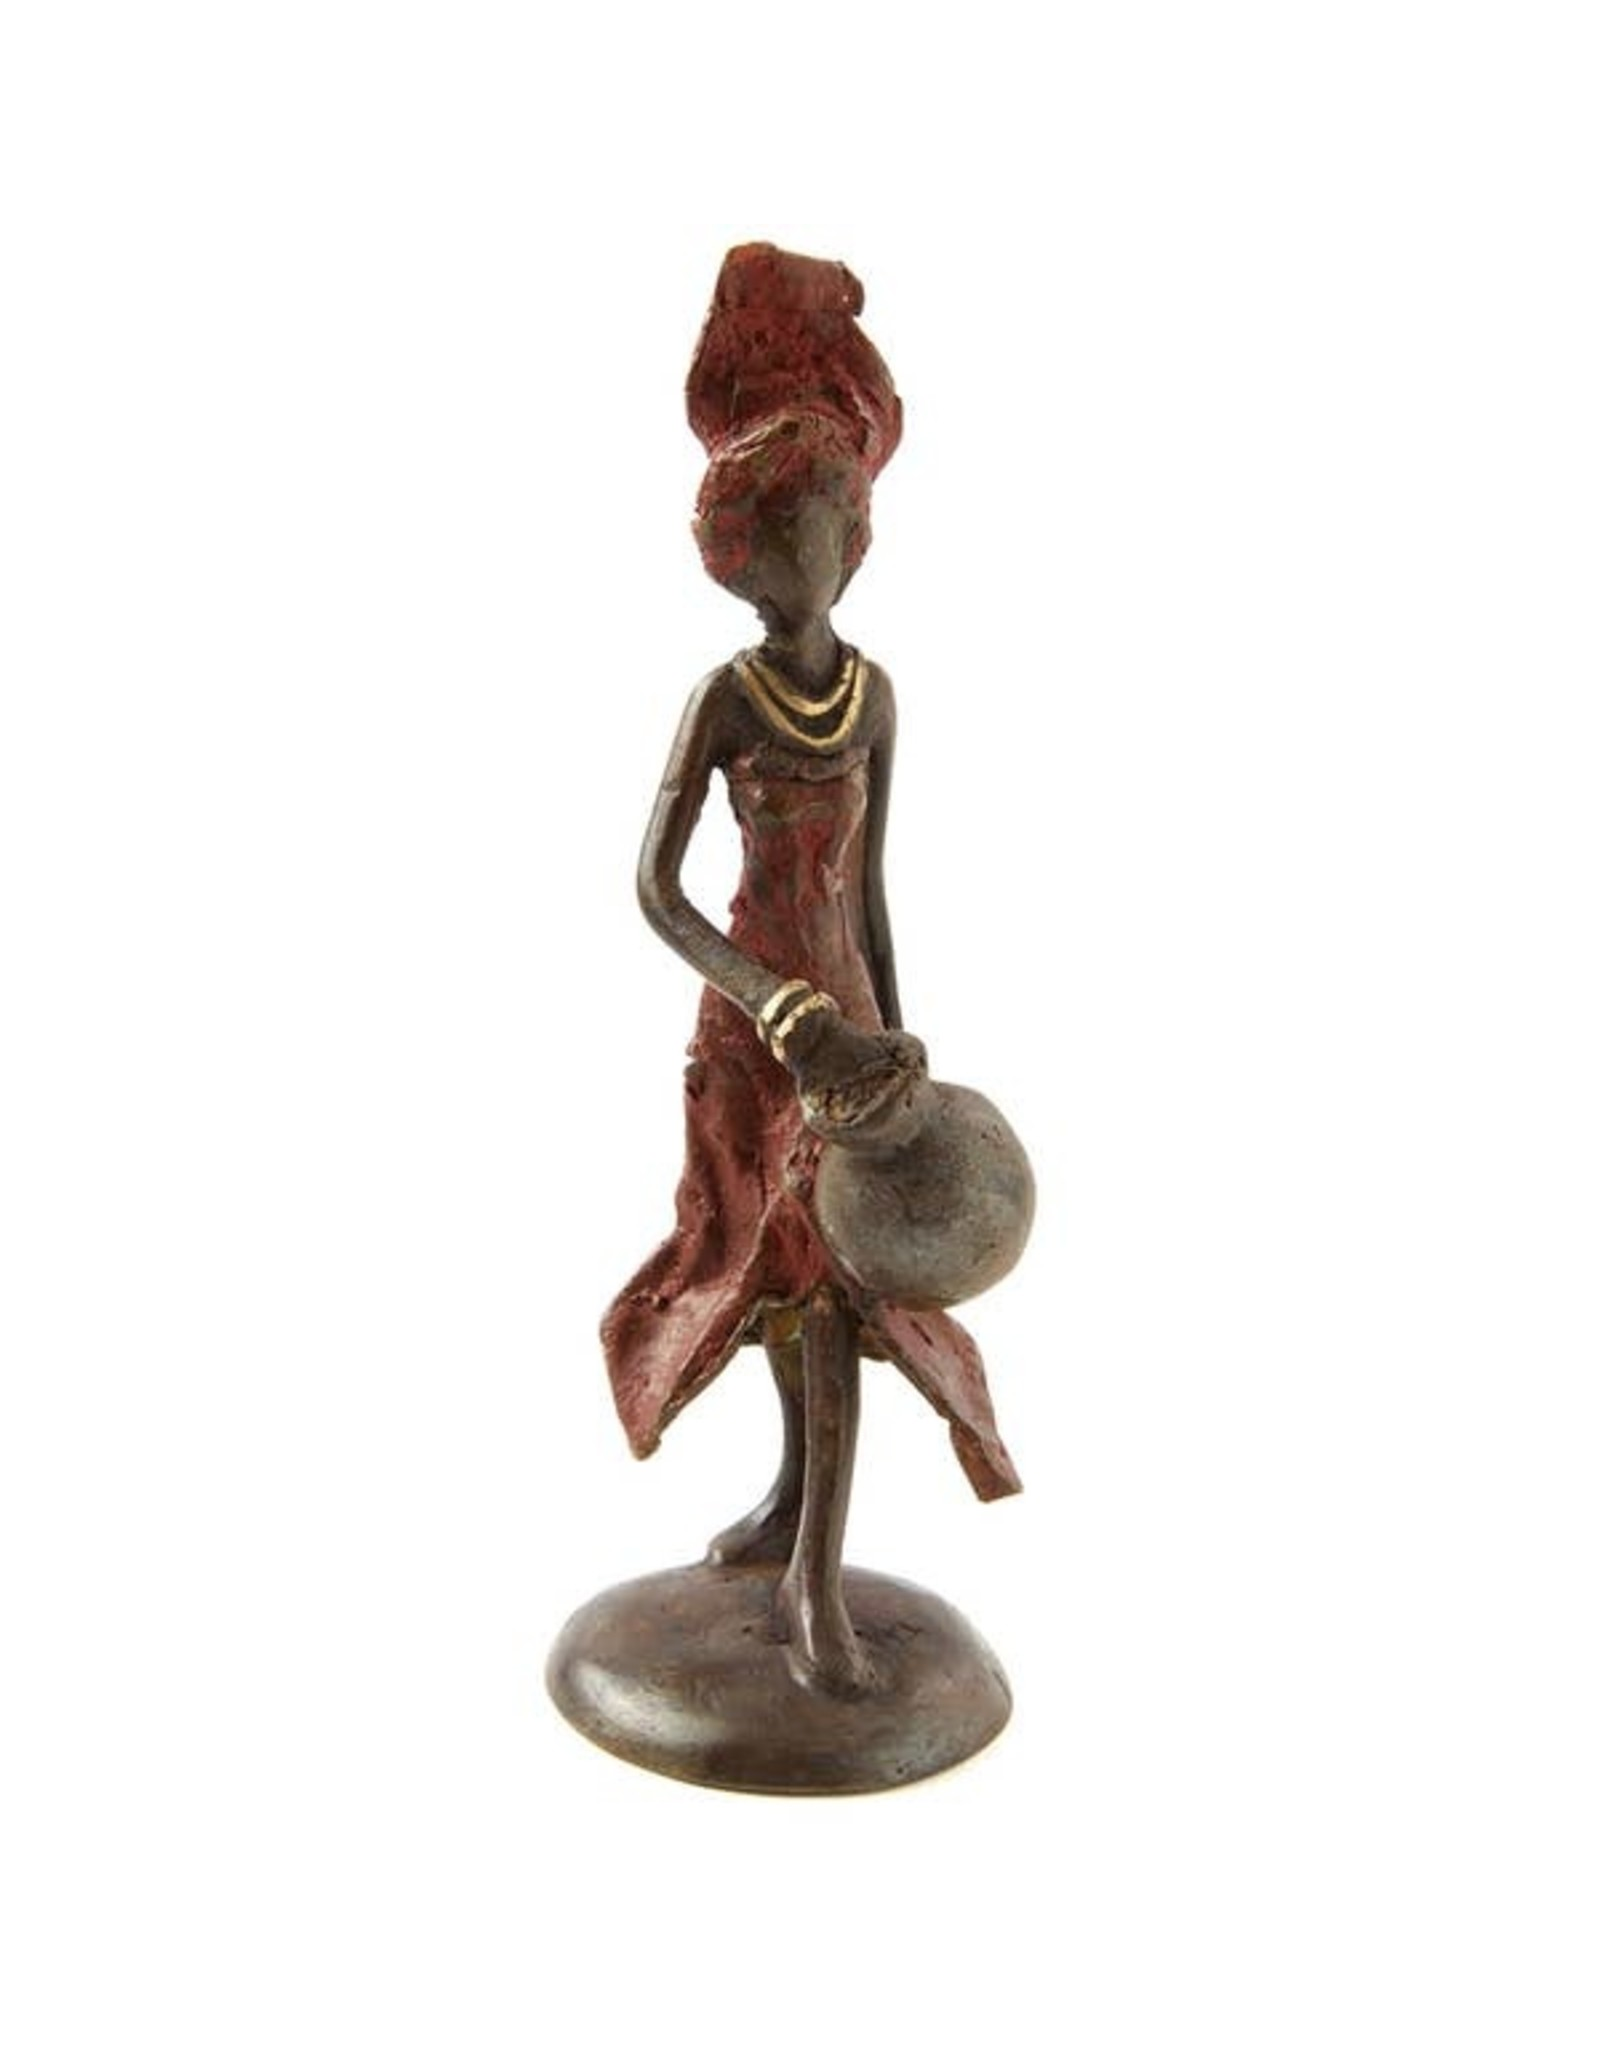 Swahili African Modern Lost Wax Sculpture- woman in red